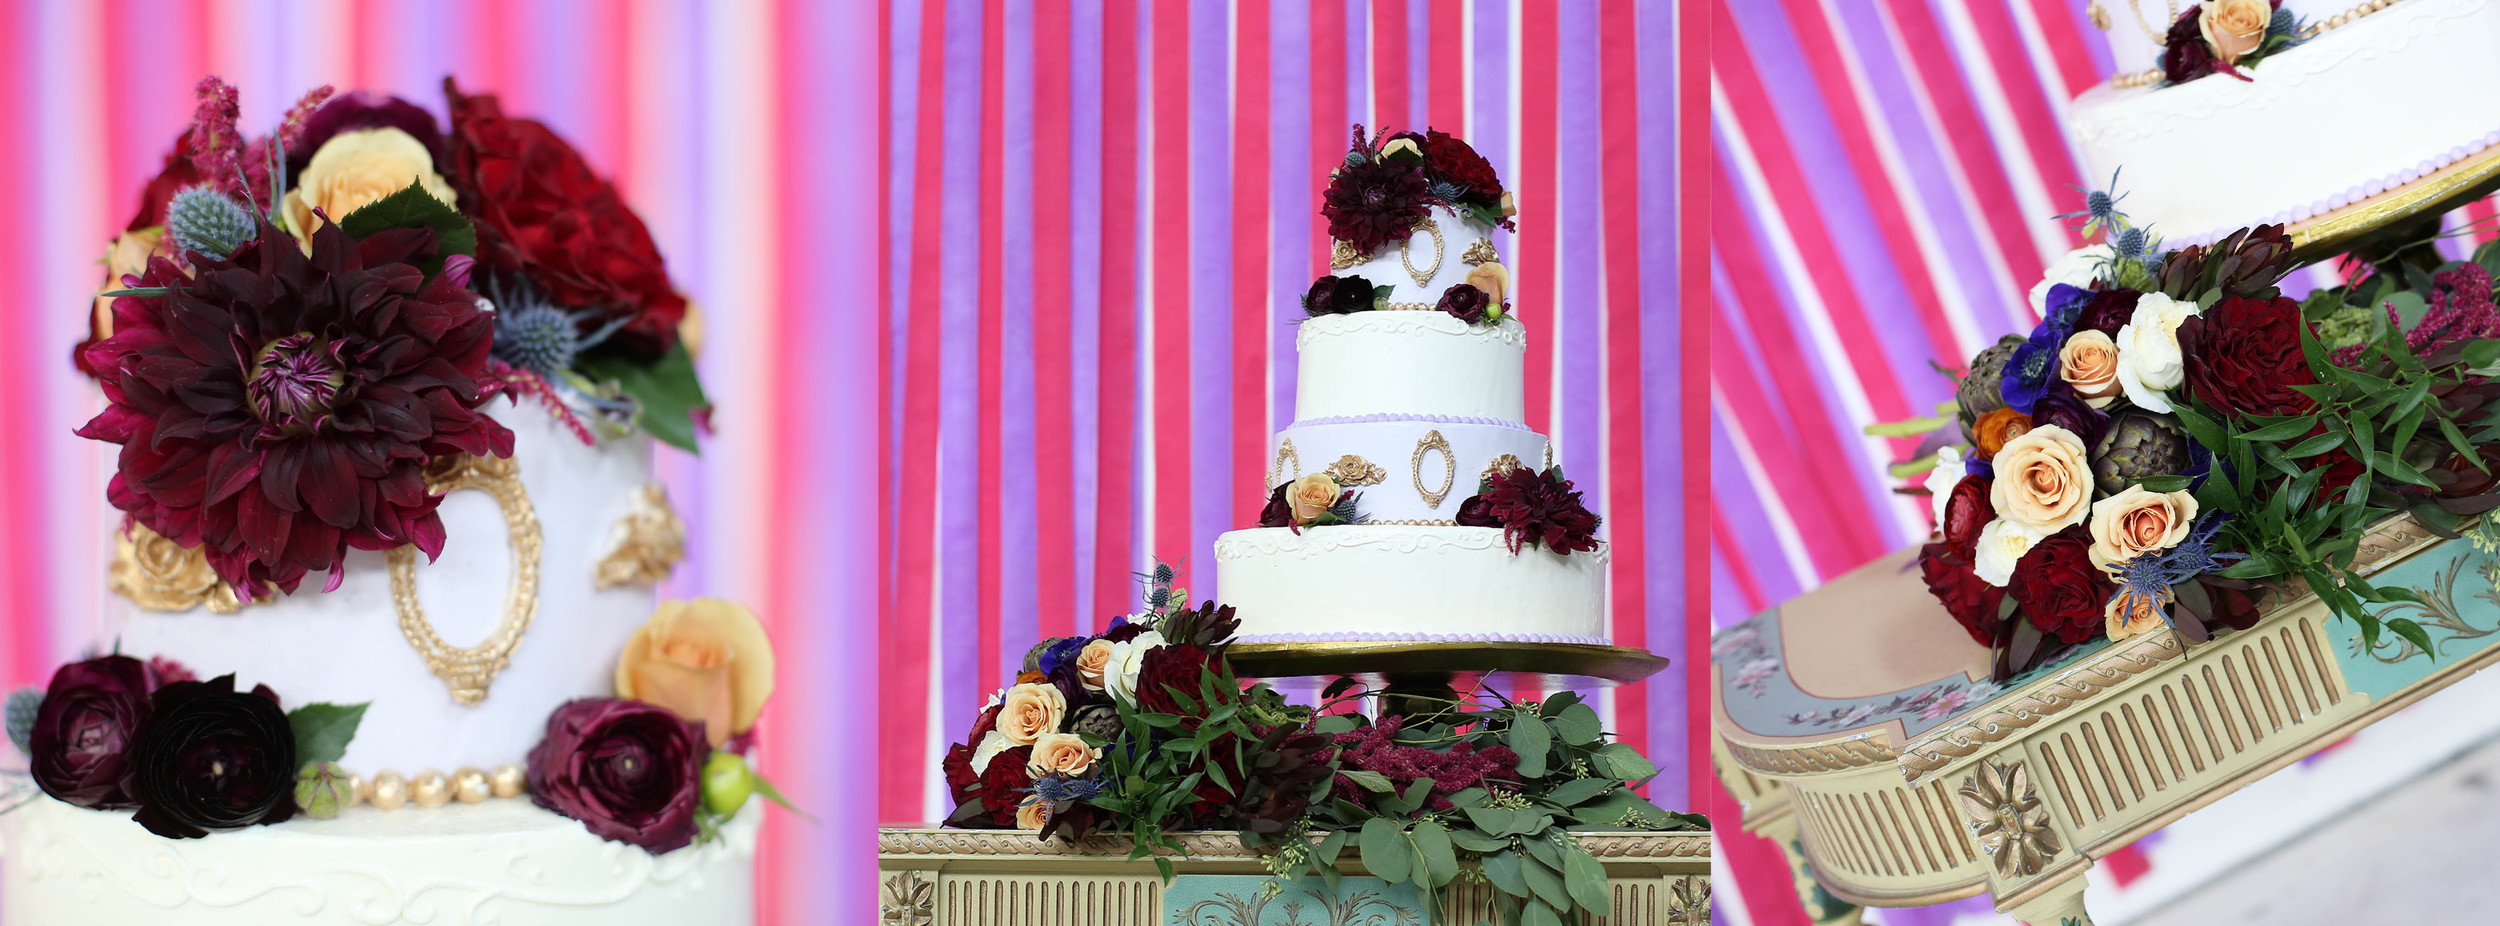 Thank you Alexa from Amélie's for such a gorgeous cake---and Julie for the fleurs!